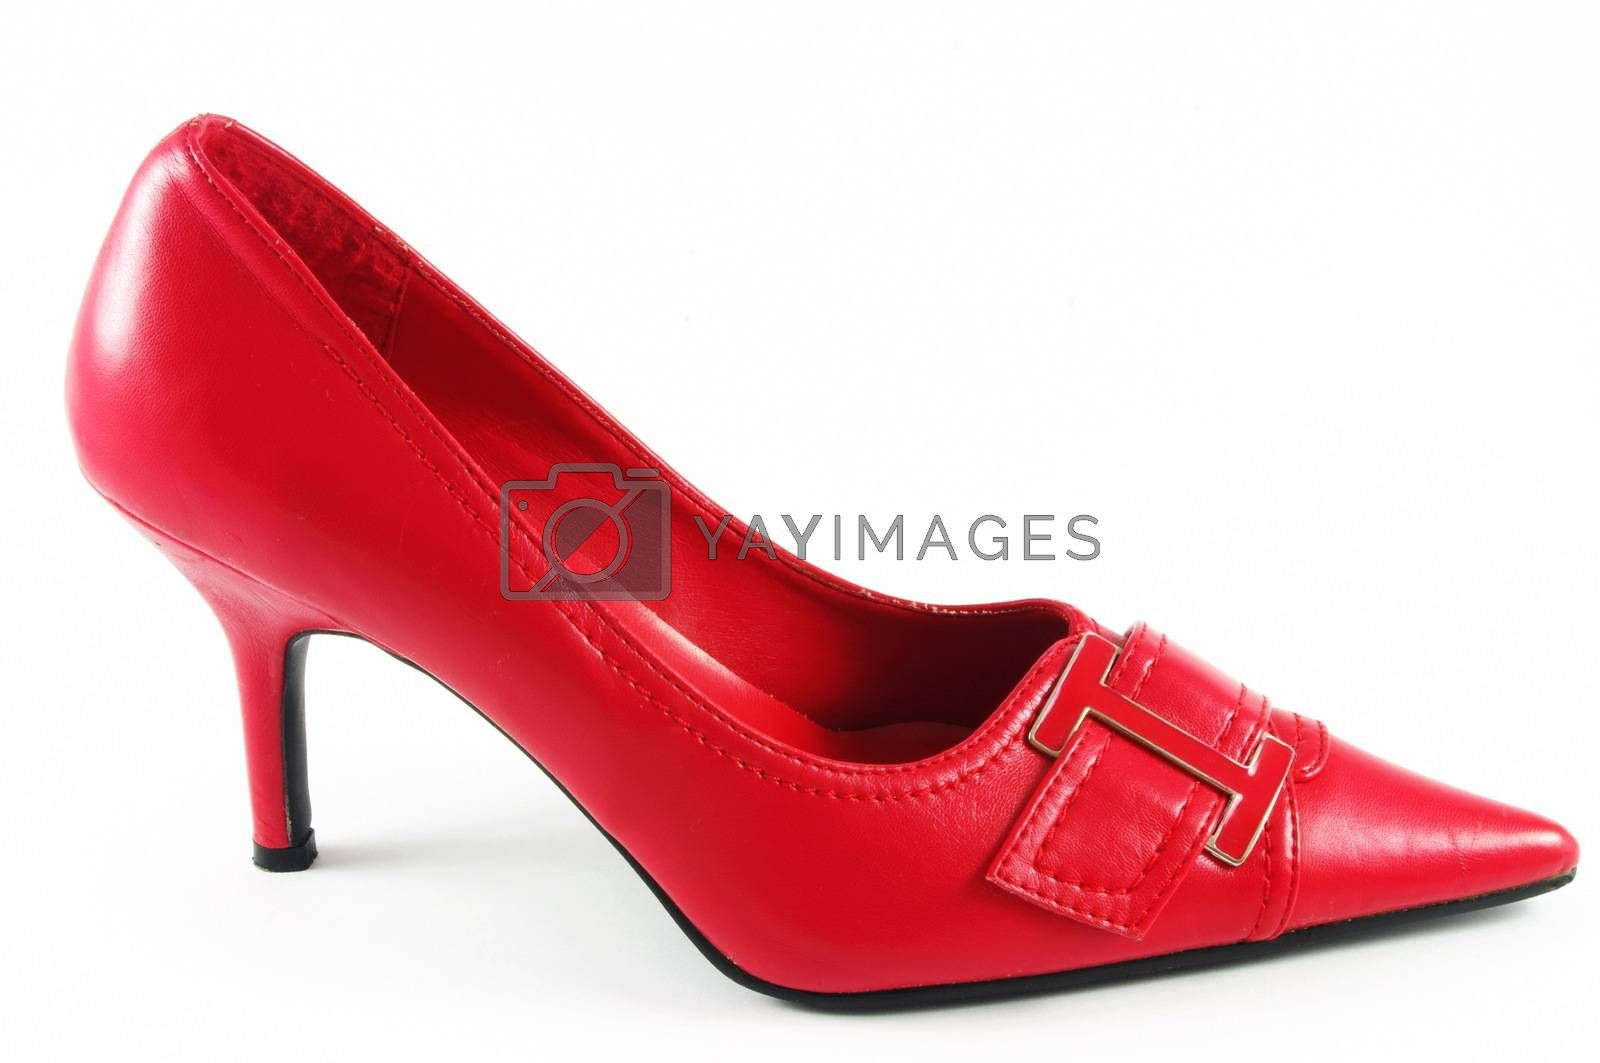 Red womens shoe on white